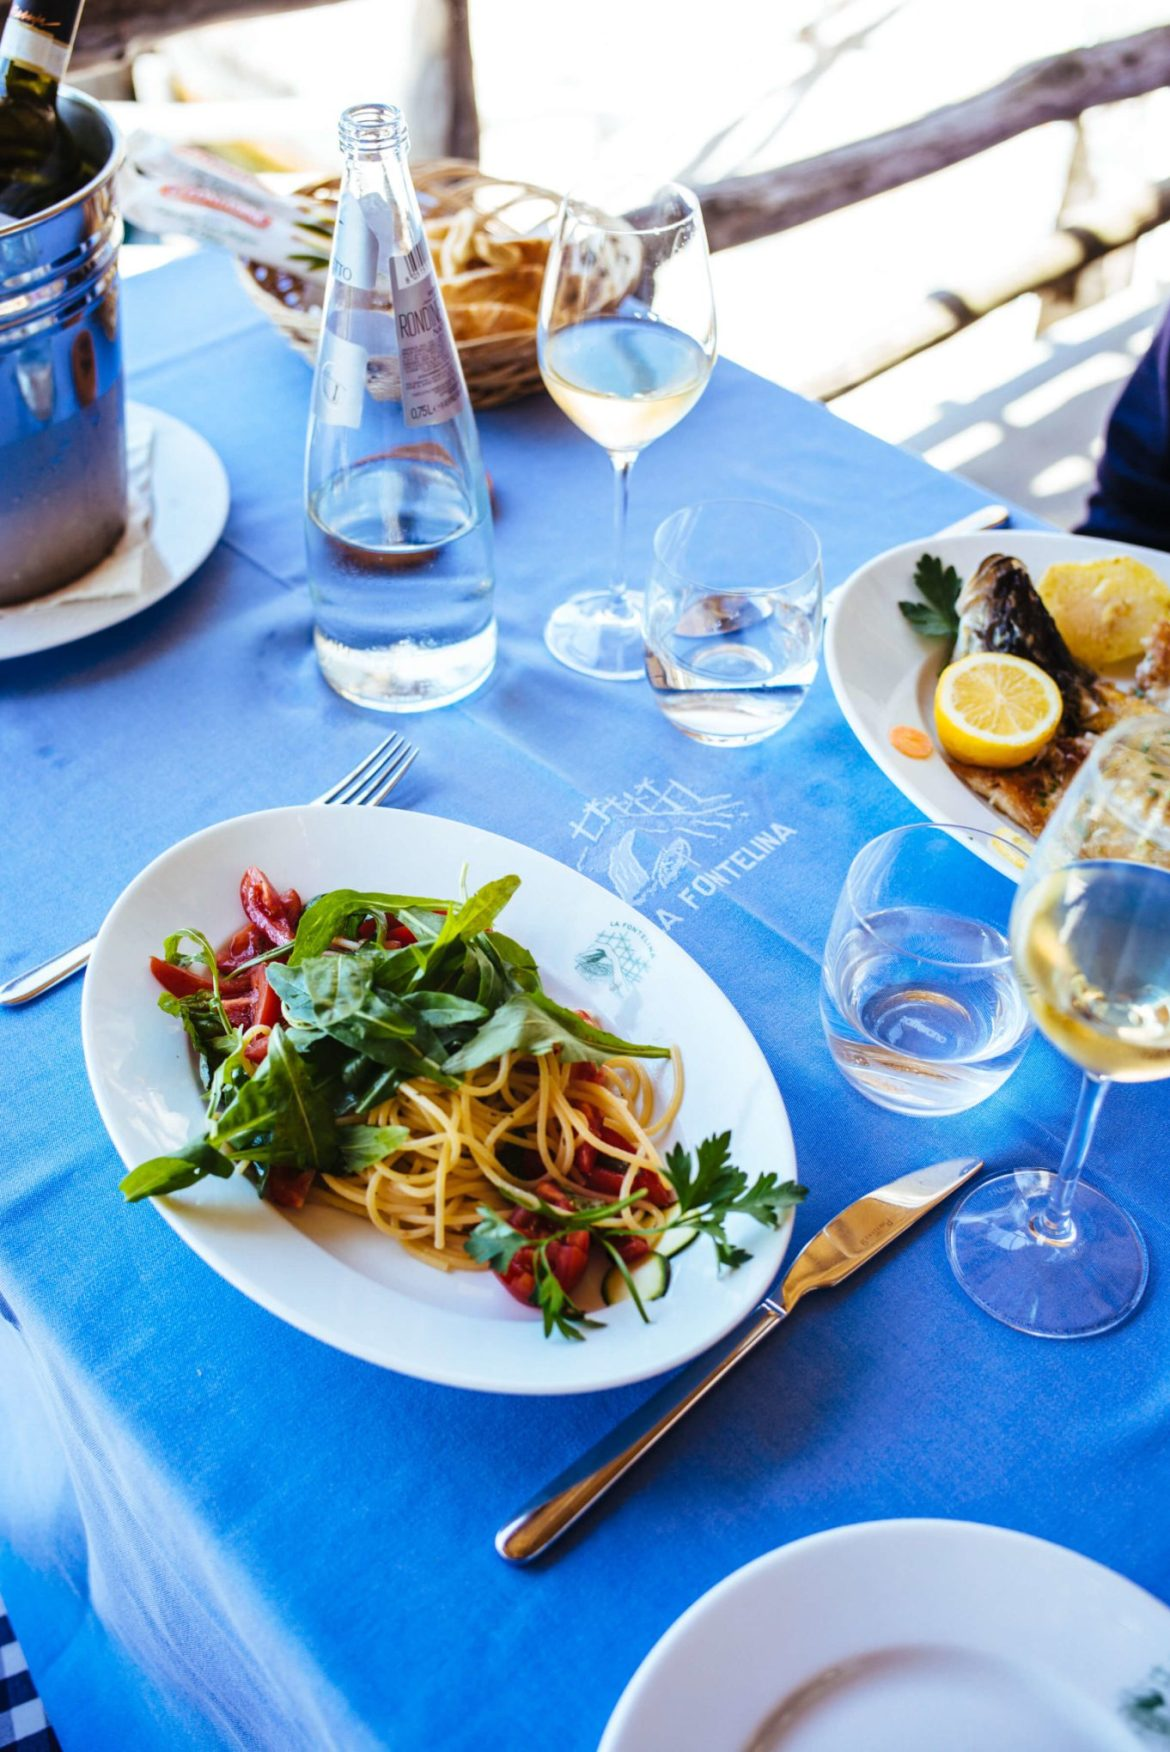 Take a boat to eat lunch on the water at Ristorante La Fontelina in Capri, Italy, The Taste Edit